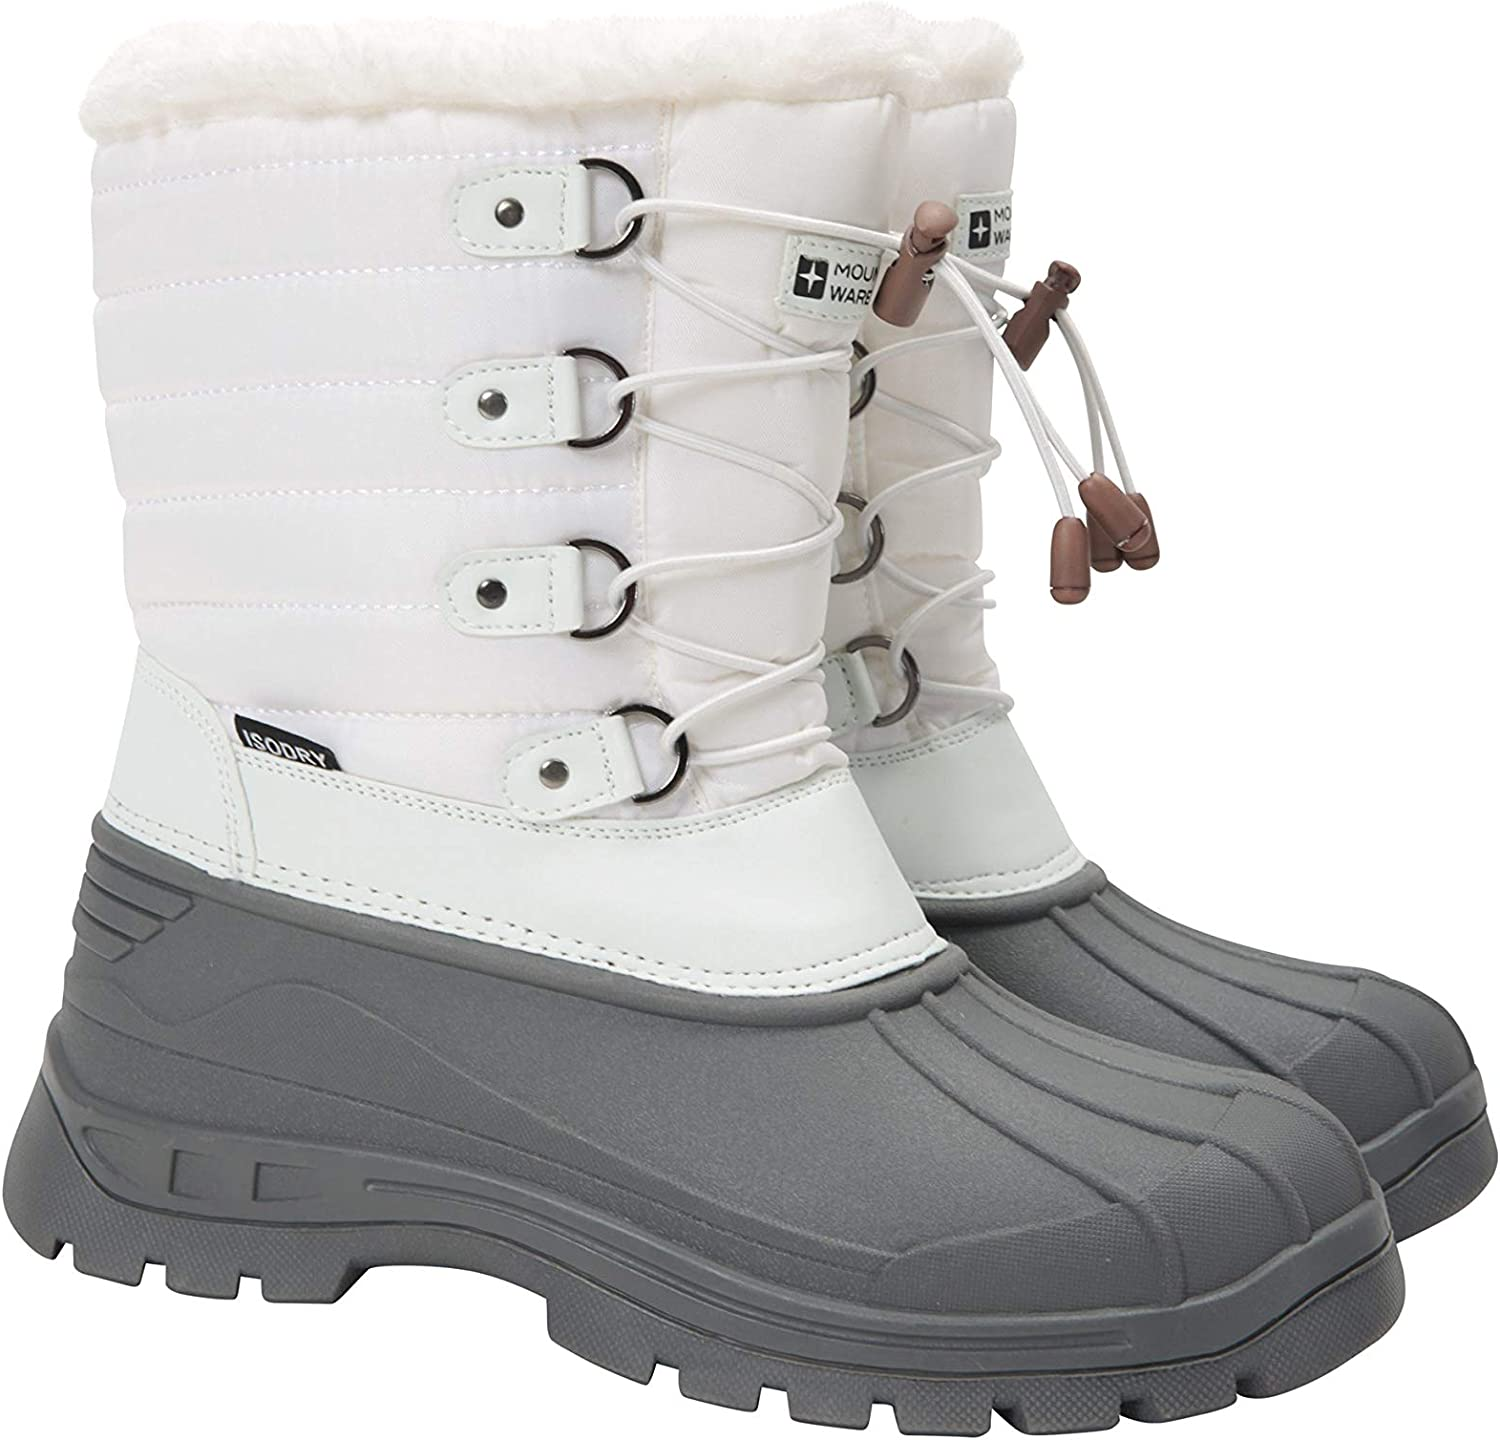 Mountain Warehouse Whistler Womens Snow Boots - Ladies Winter Shoes